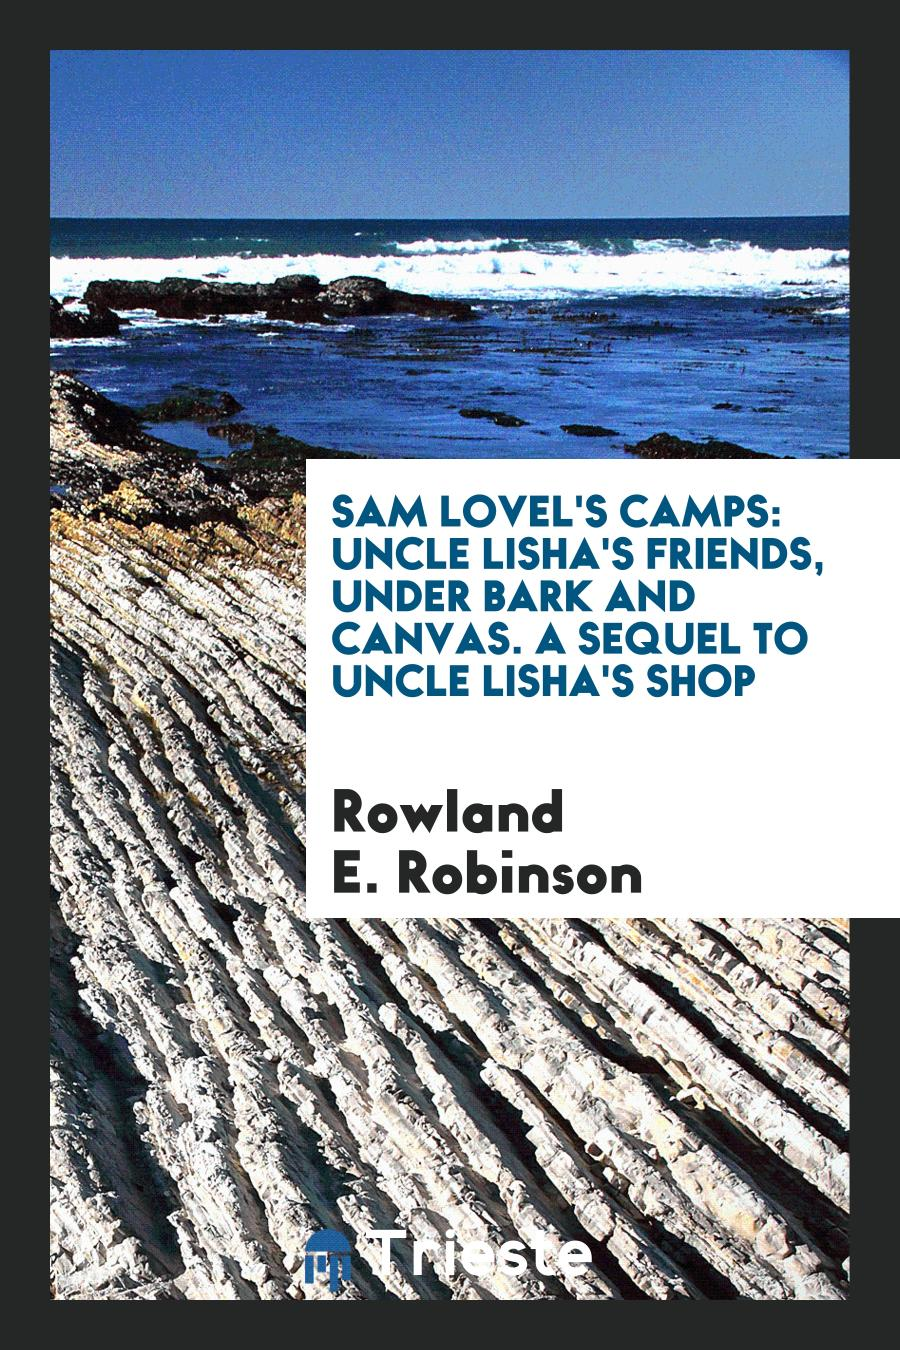 Sam Lovel's Camps: Uncle Lisha's Friends, Under Bark and Canvas. A Sequel to Uncle Lisha's Shop